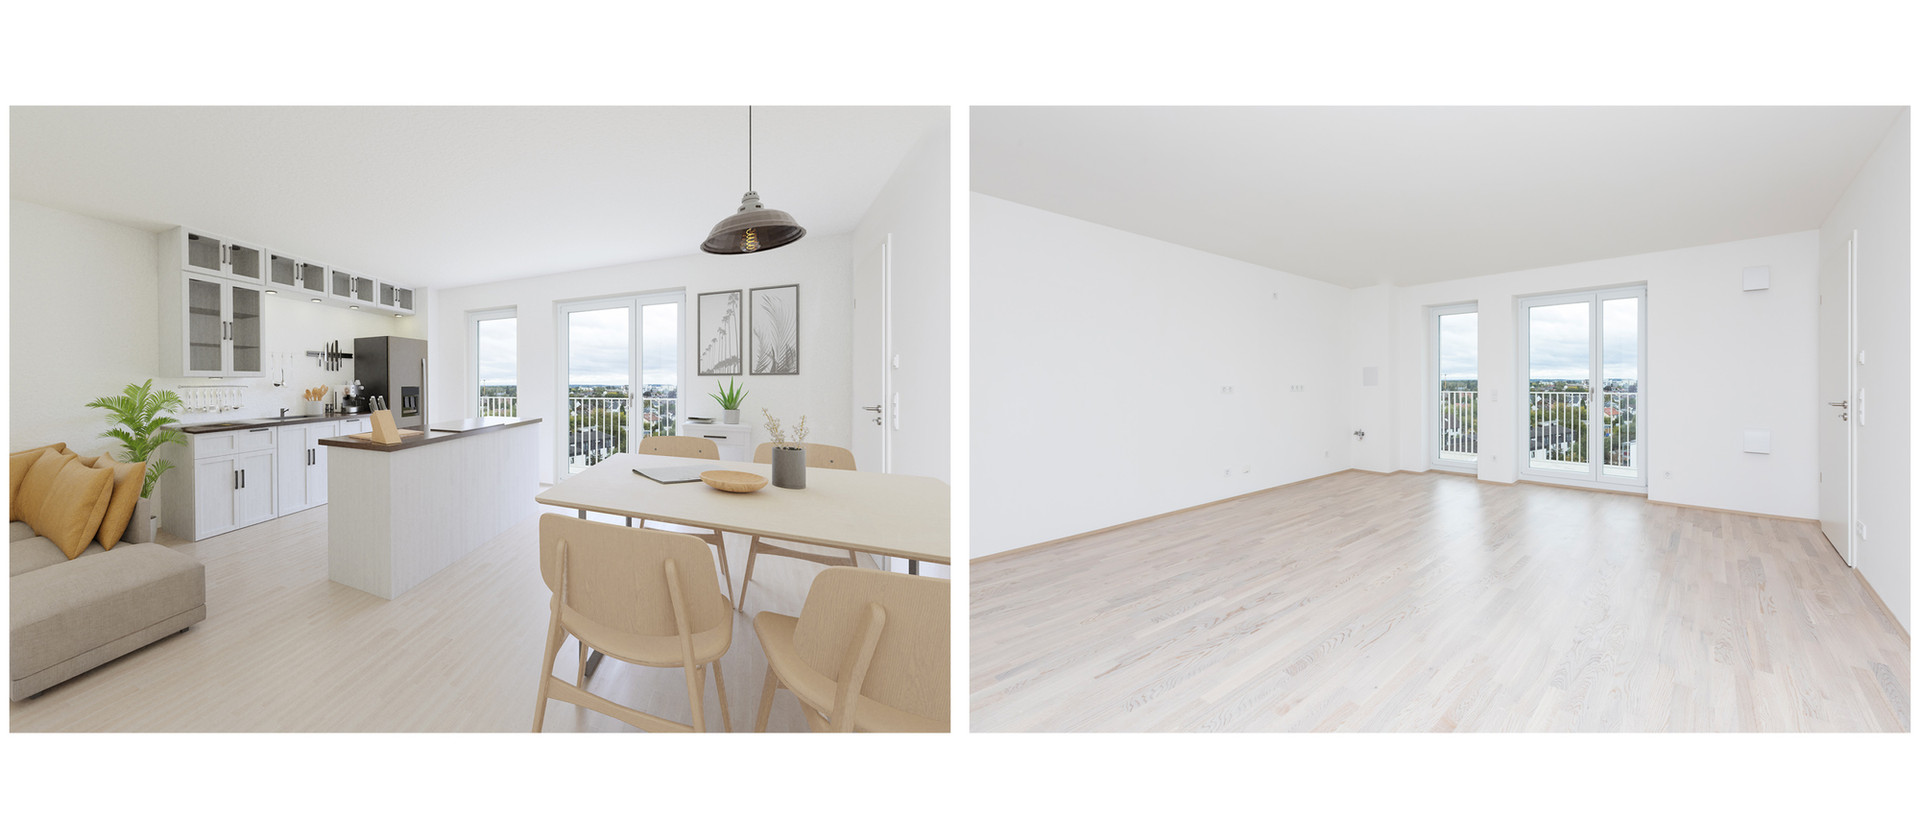 virtuelles Homestaging Concept Bau